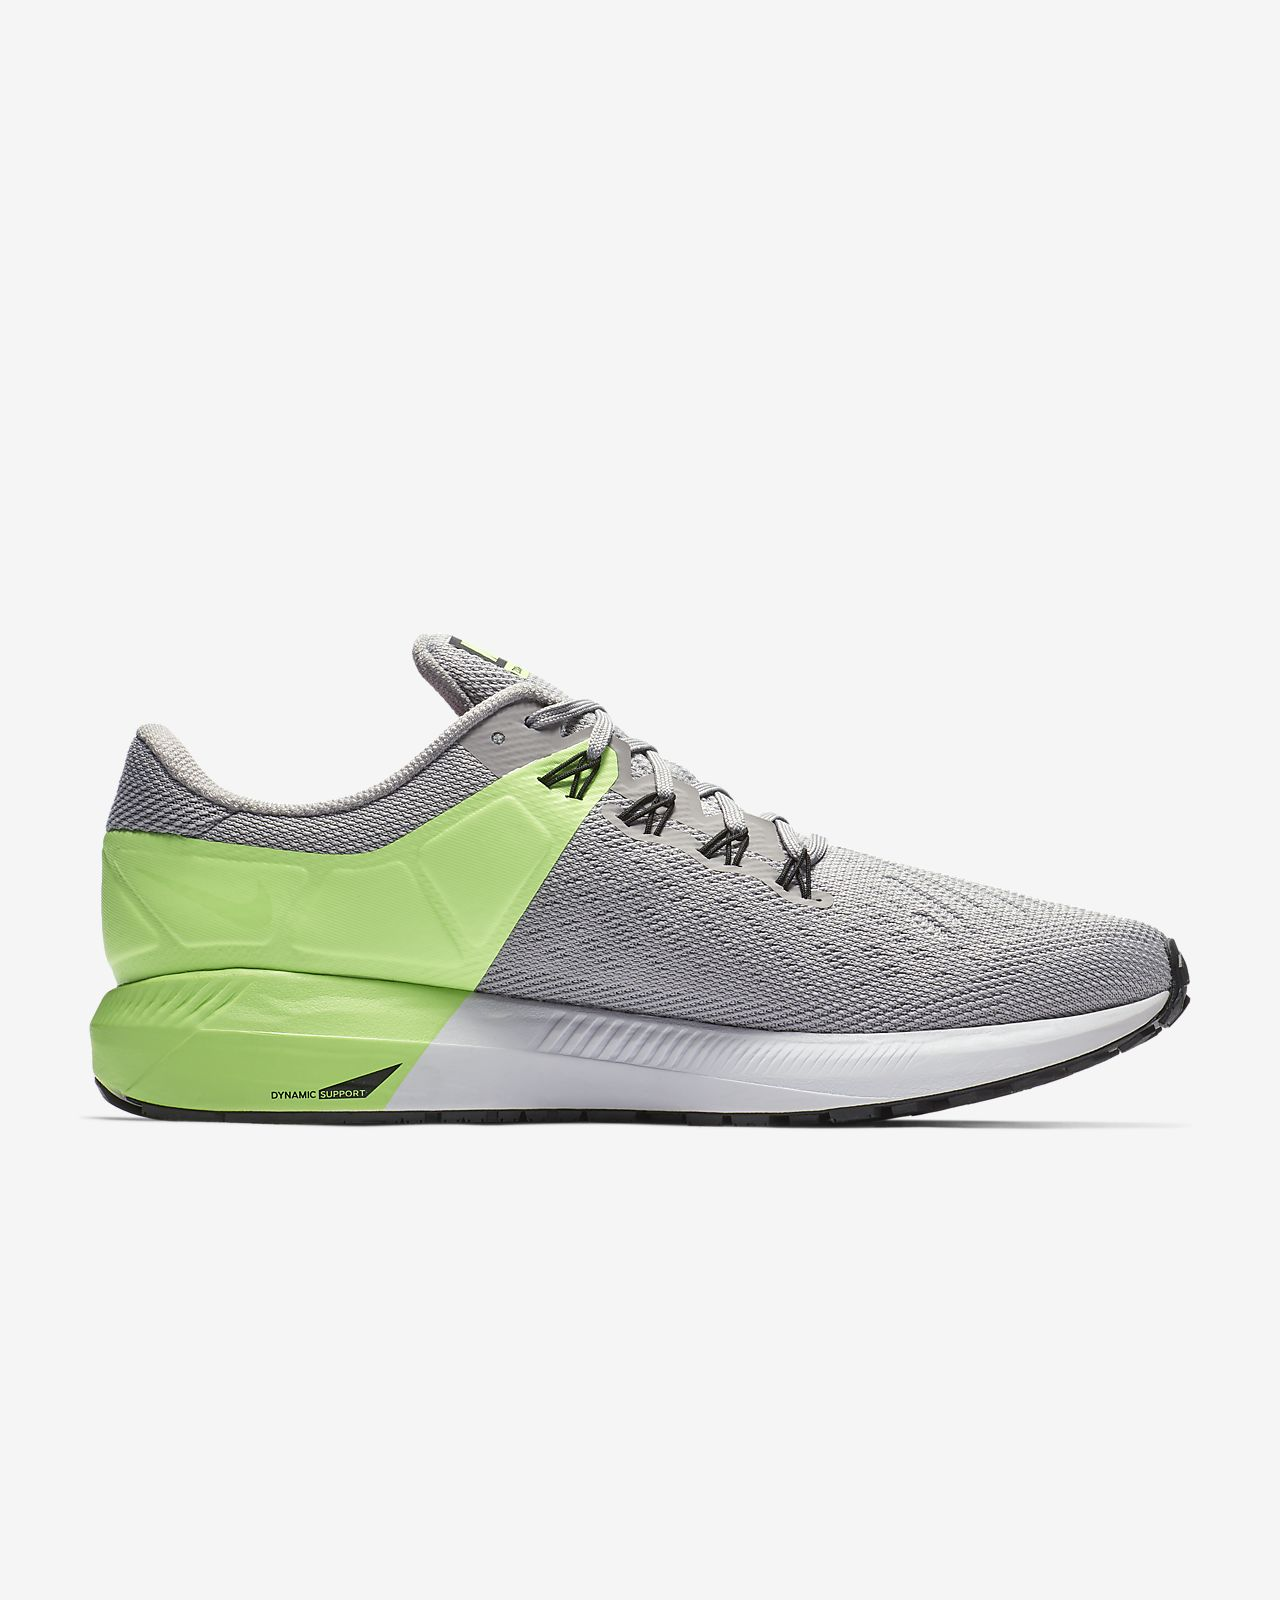 4c8f047133fa Chaussure de running Nike Air Zoom Structure 22 pour Homme. Nike.com BE